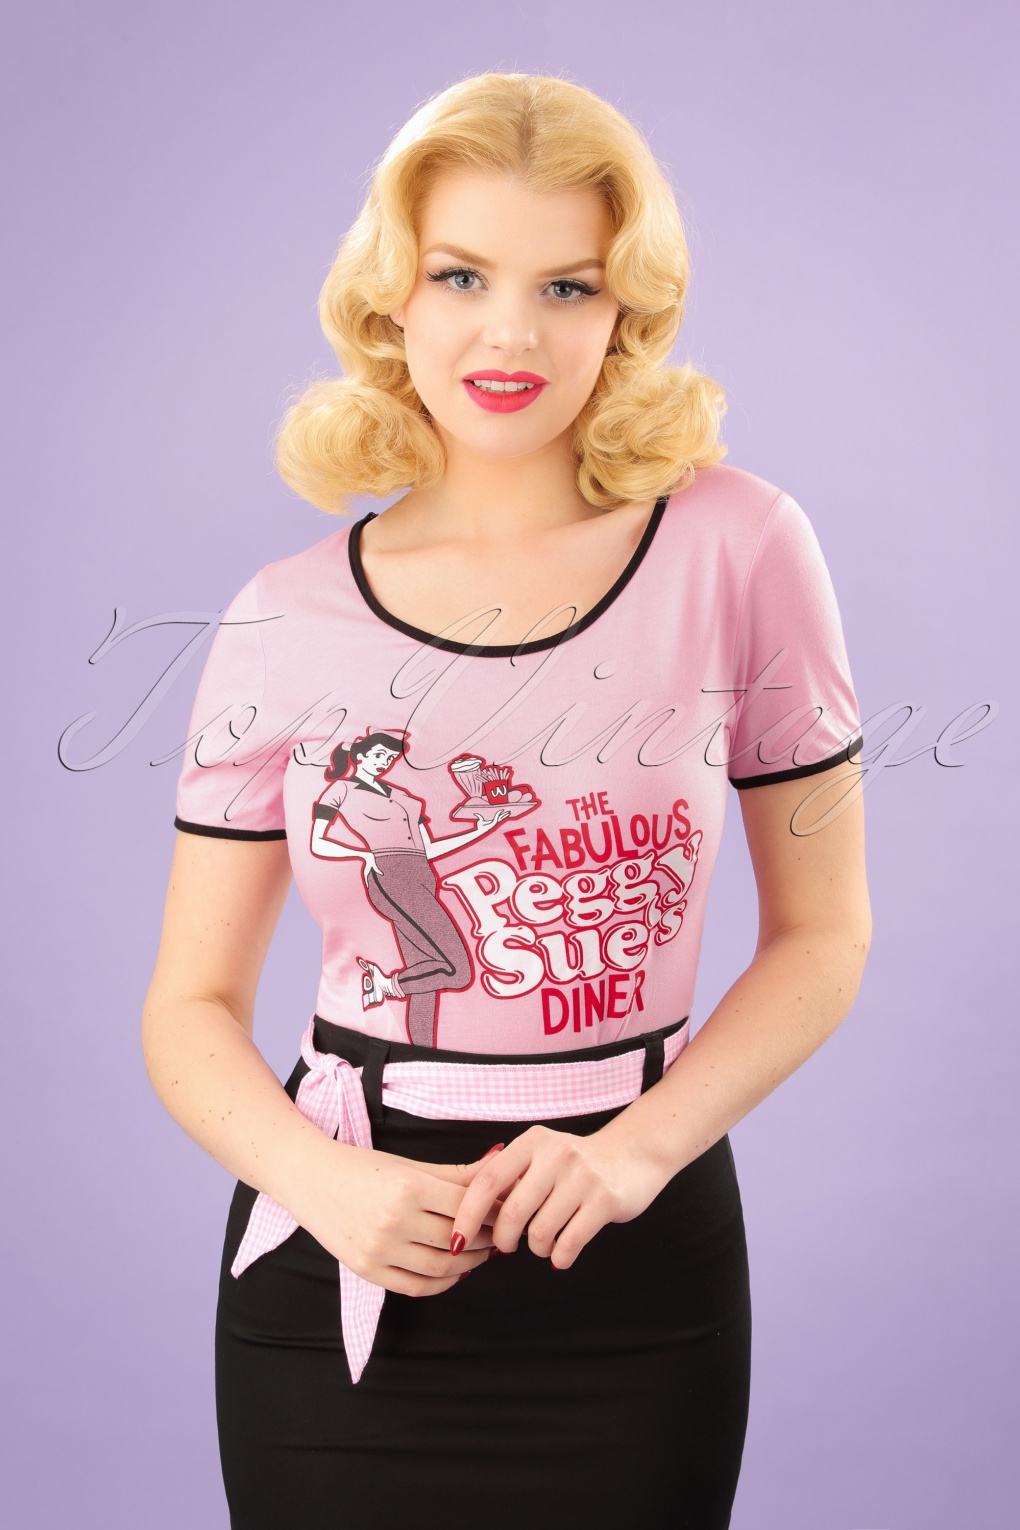 Vintage & Retro Shirts, Halter Tops, Blouses 50s Fabulous Peggy Sues Diner T-Shirt in Pink £19.59 AT vintagedancer.com